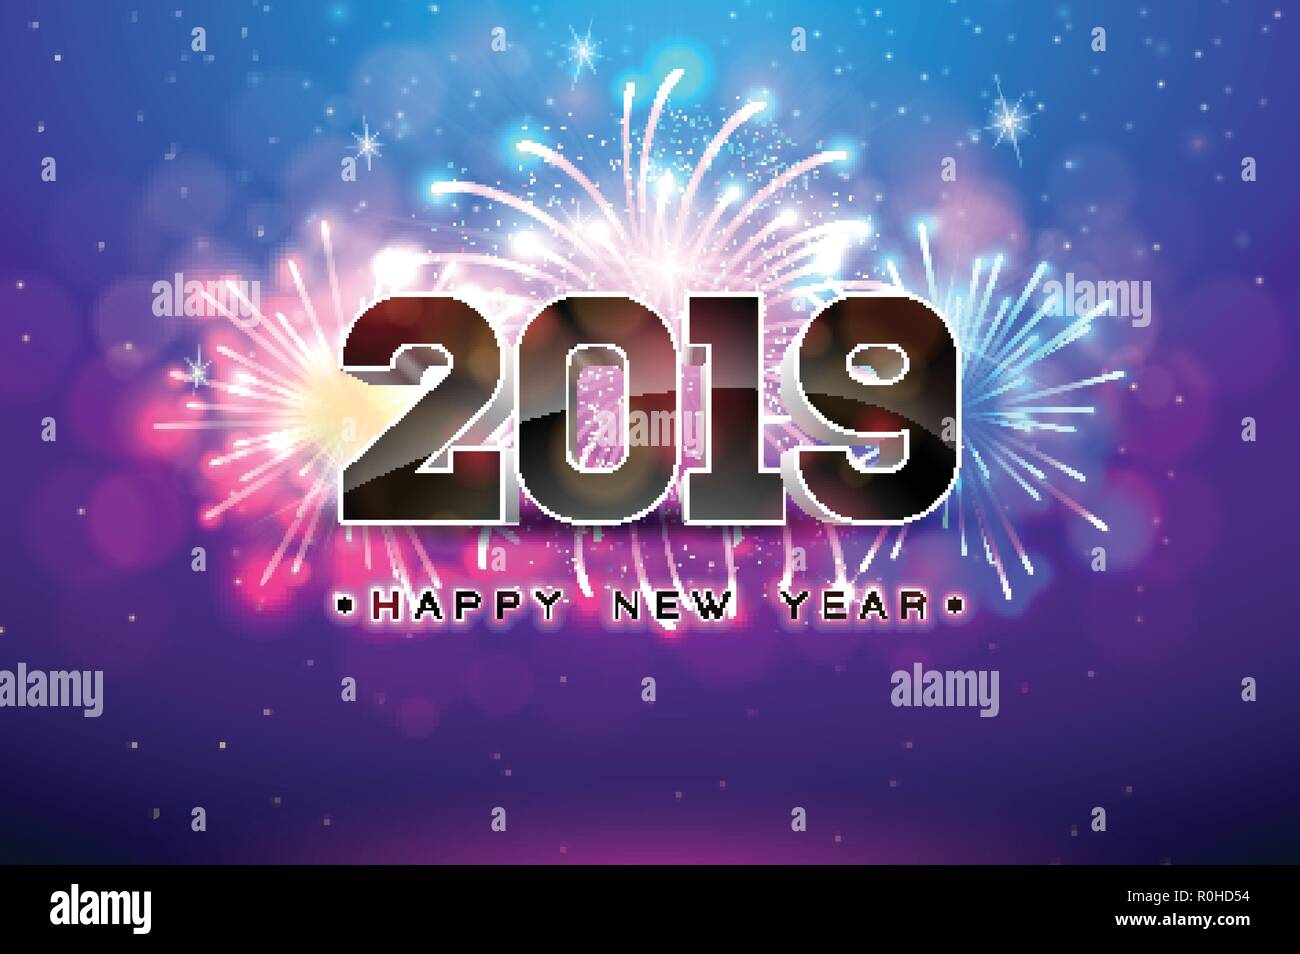 Happy New Year 2019 Illustration With Fireworks And 3d Number On